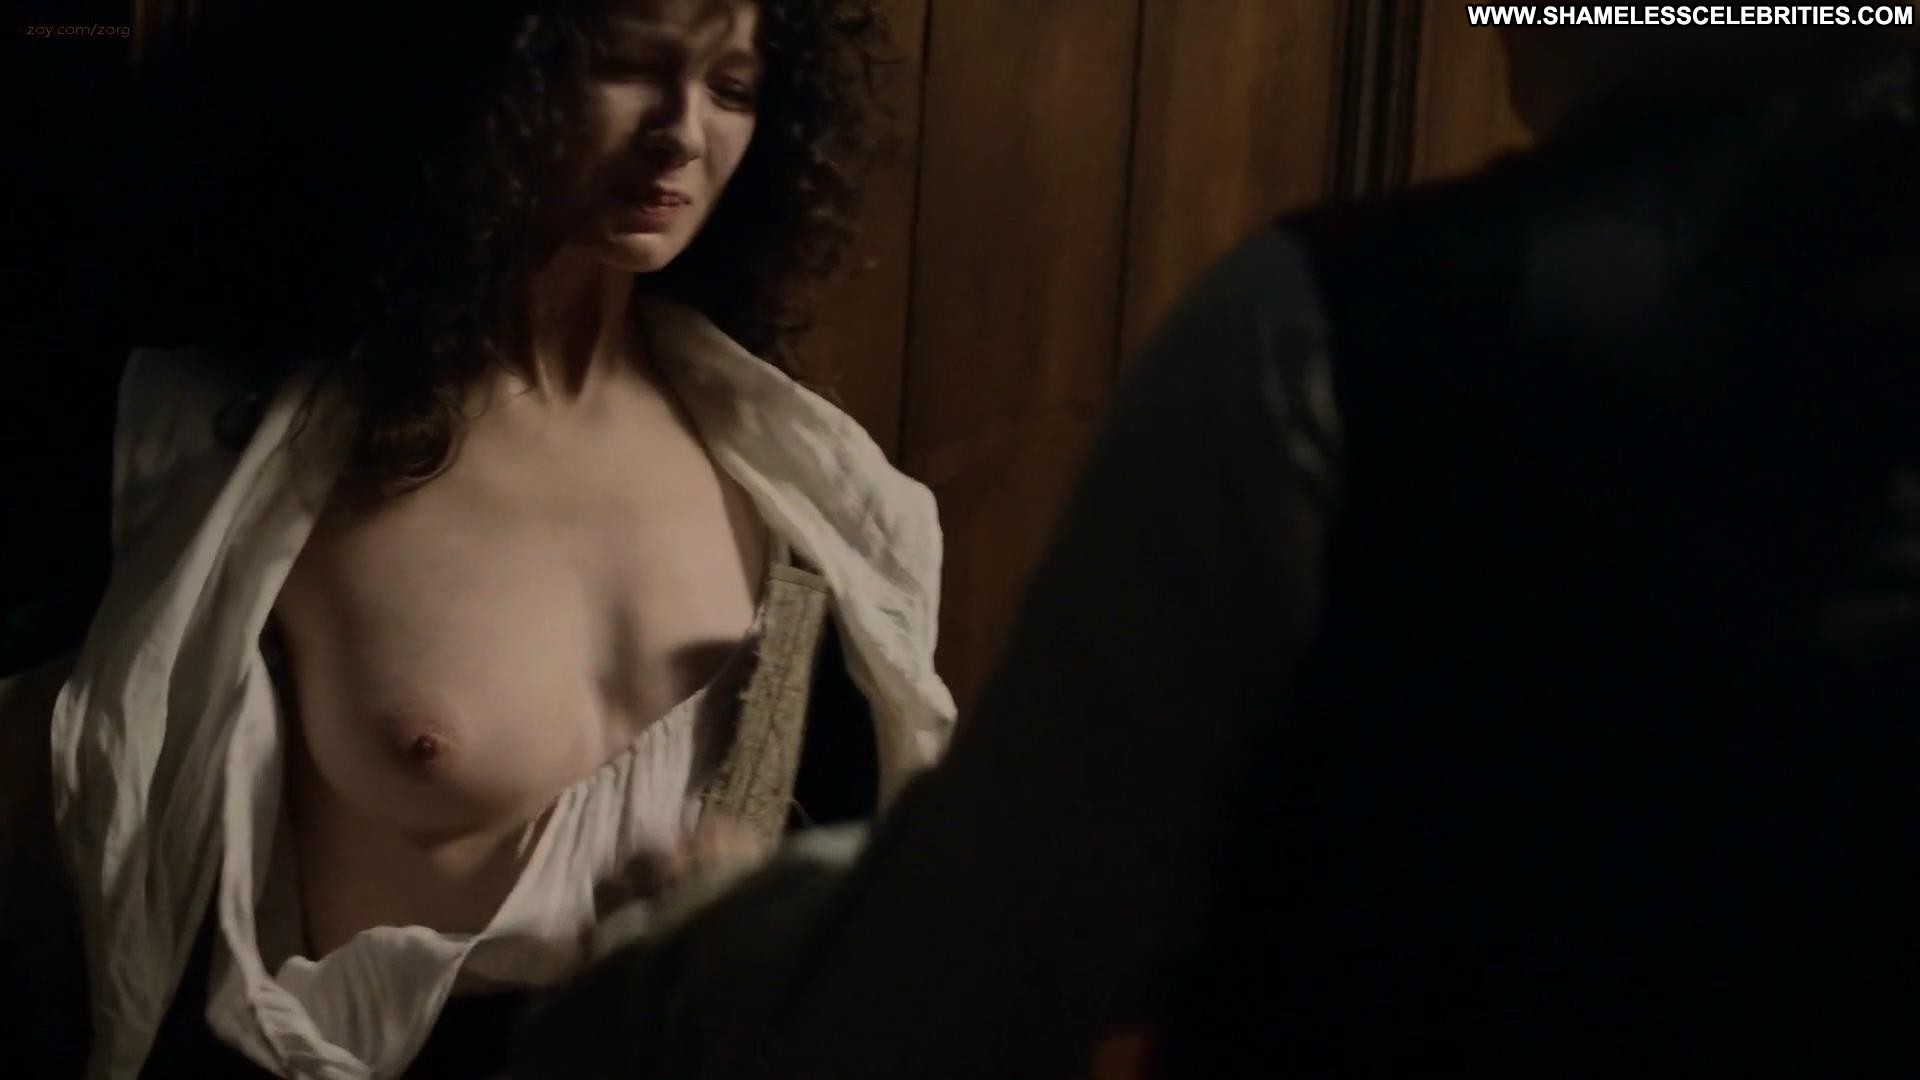 Caitriona balfe nude sex in outlander scandalplanetcom